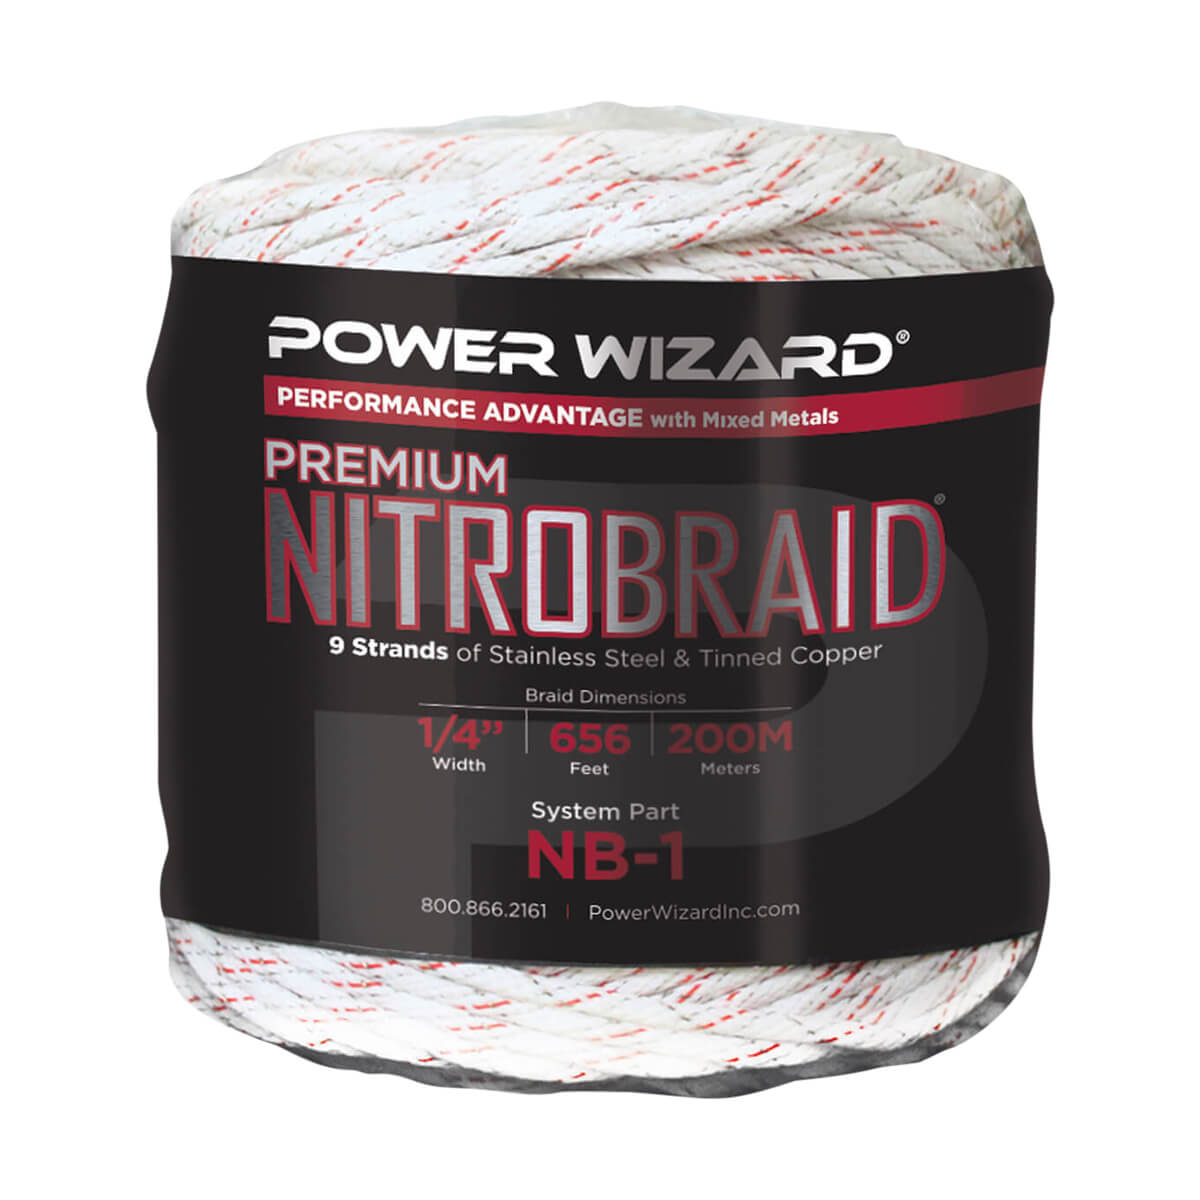 Power Wizard 200 m Nitro Braid NB-1 - 656 ft / 200 M